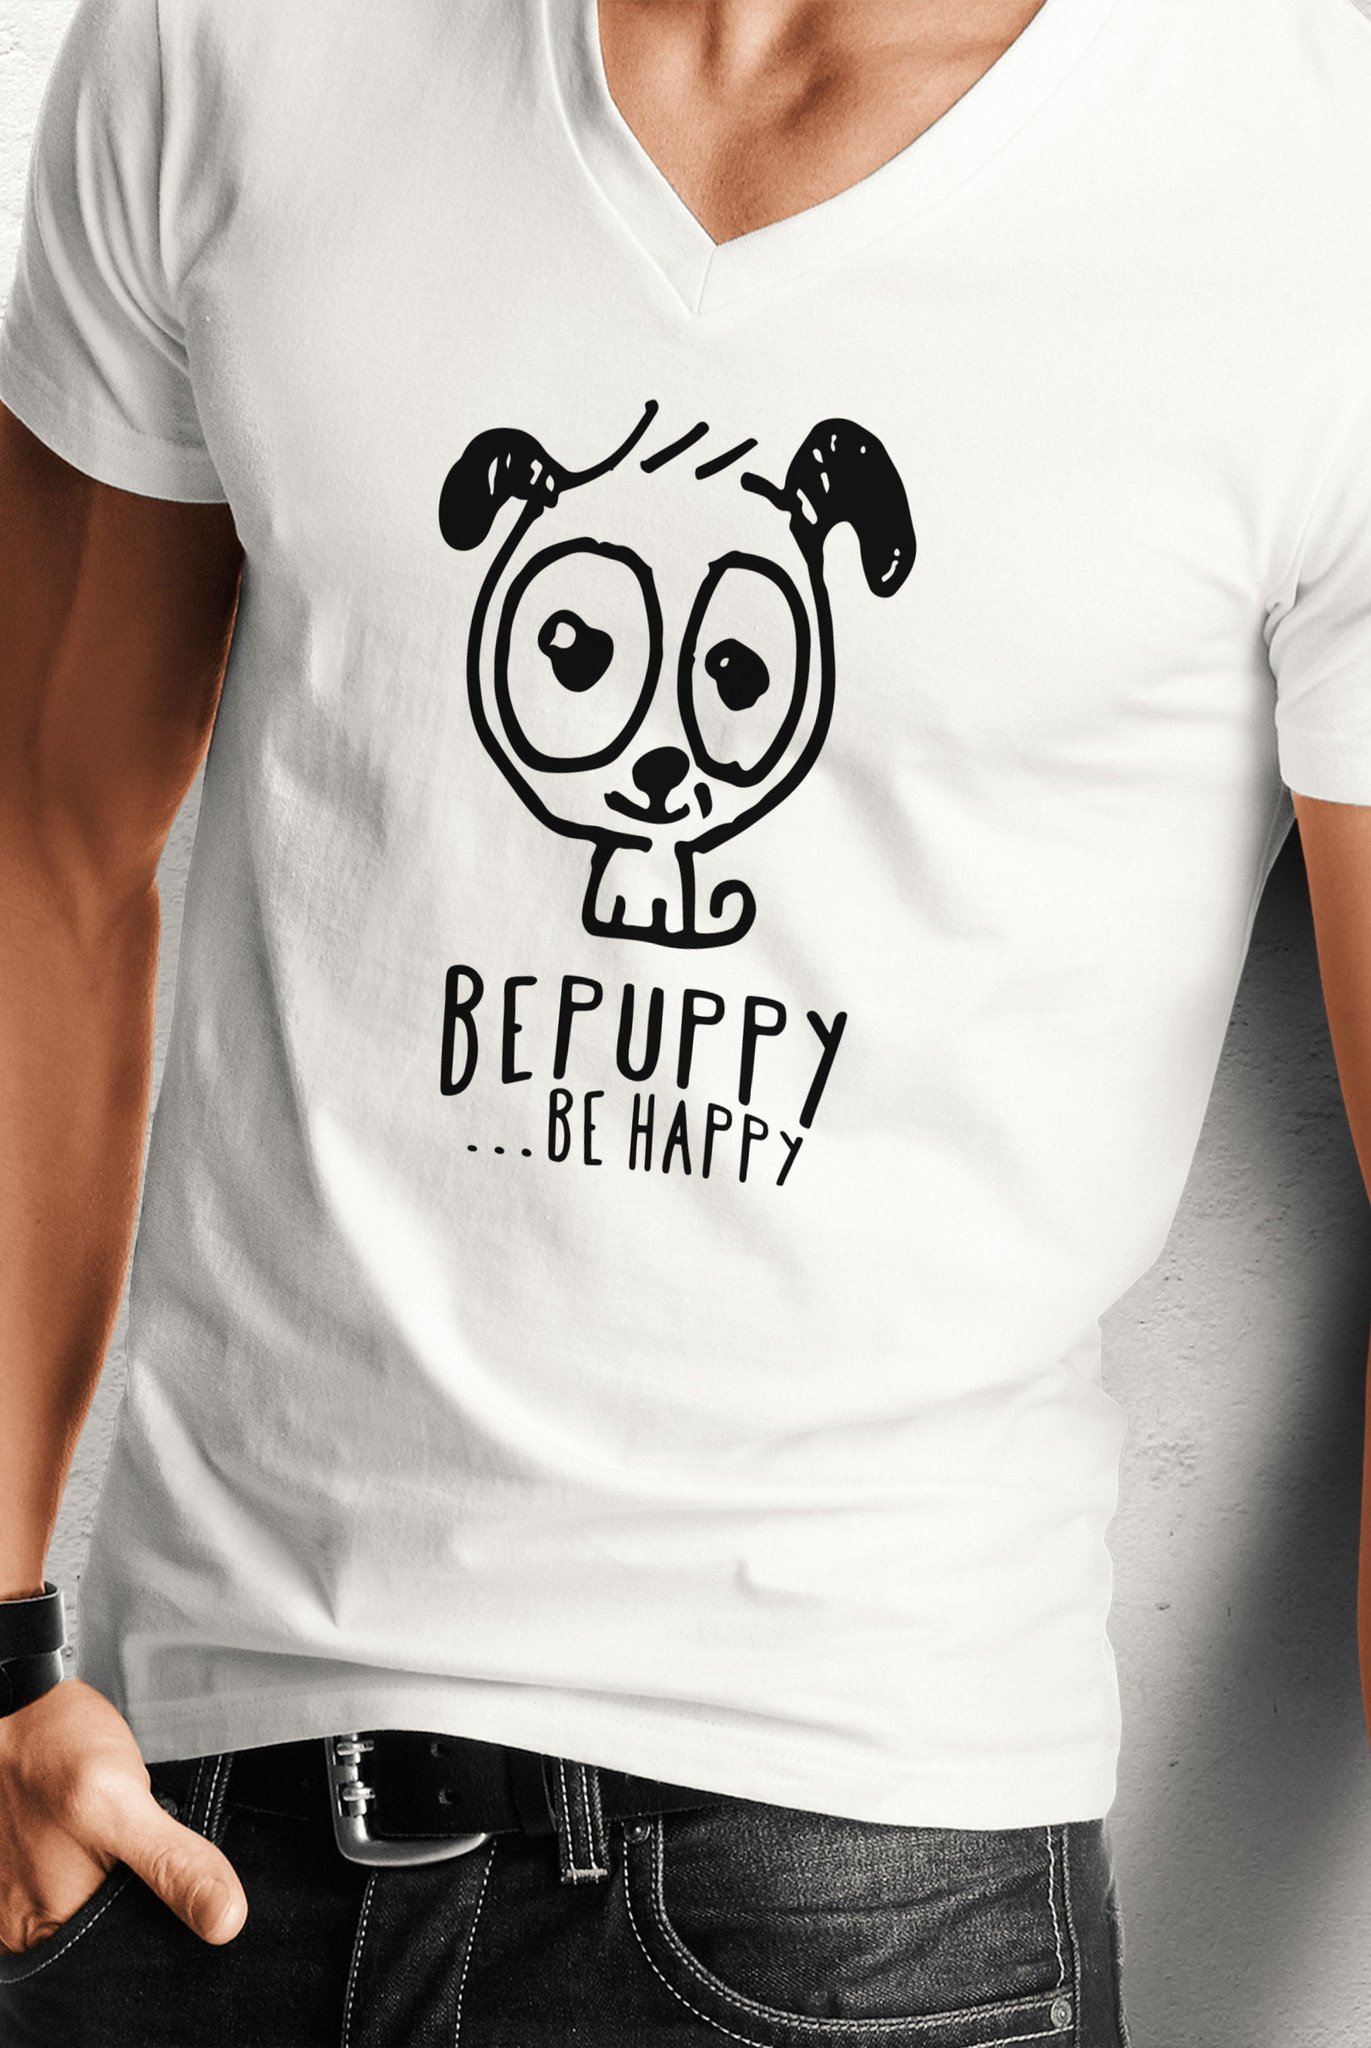 Maglietta con collo a v da uomo, bepuppy be happy! - BEPUPPY